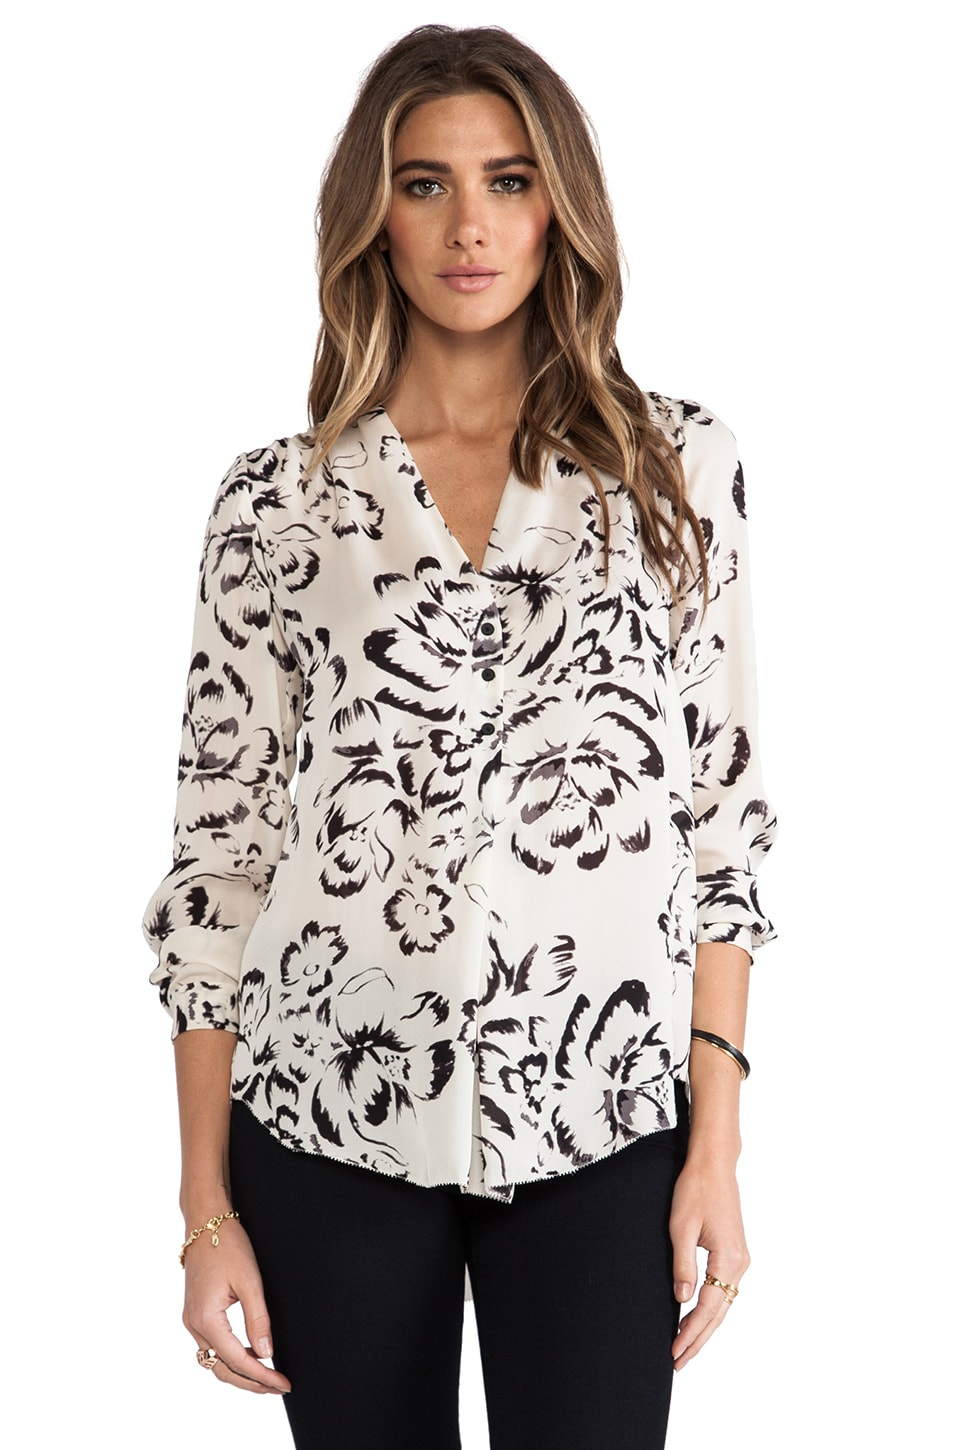 Rebecca Taylor Artisanal Flower Blouse in Cream/Black